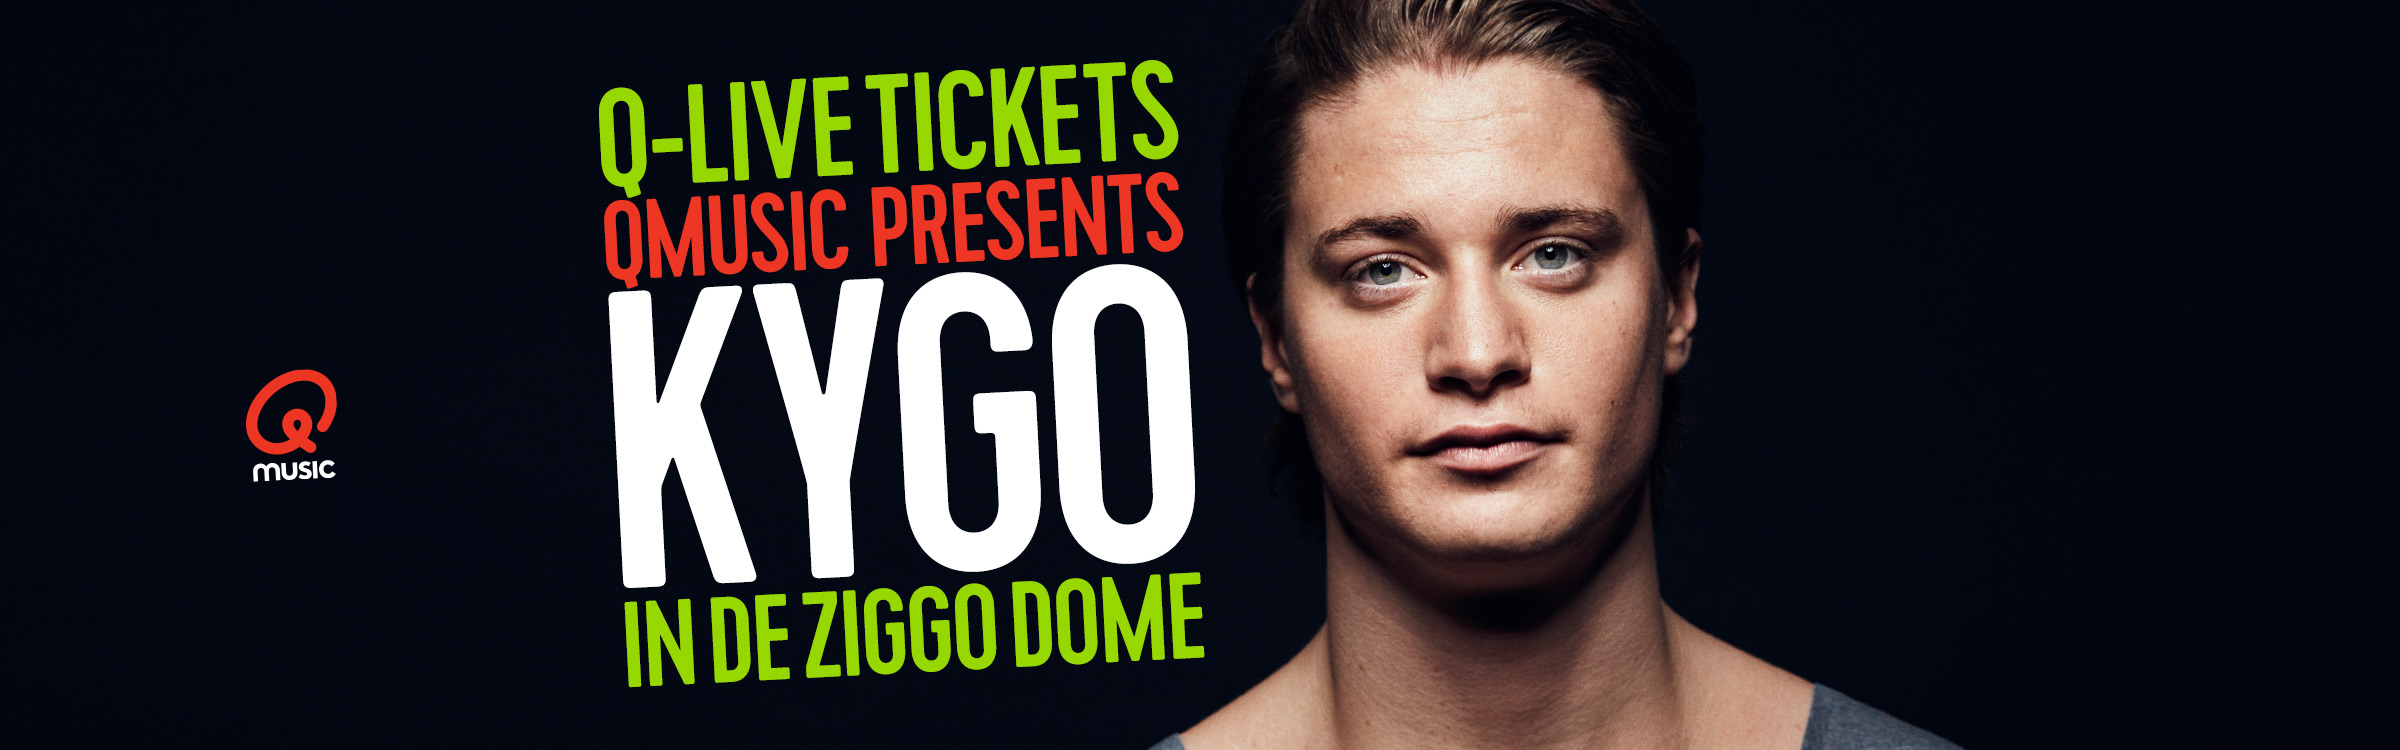 Qmusic actionheader kygo